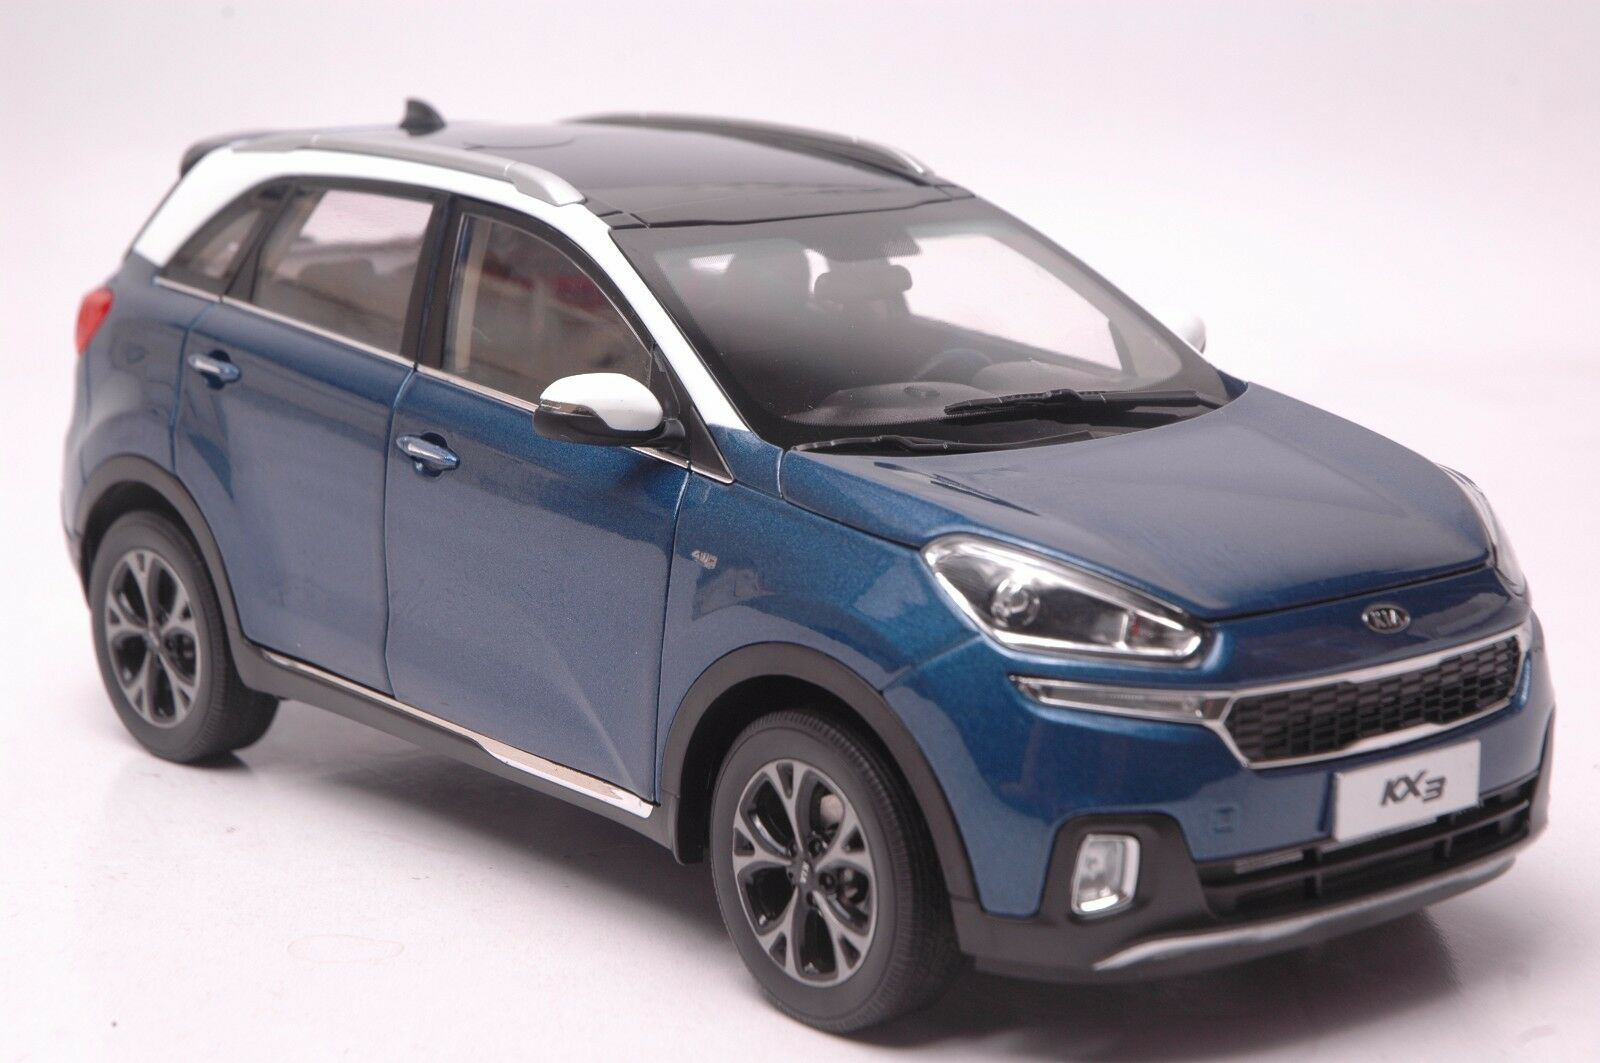 Kia Kia Kia Kx3 car model in scale 1 18 bluee 903ab2